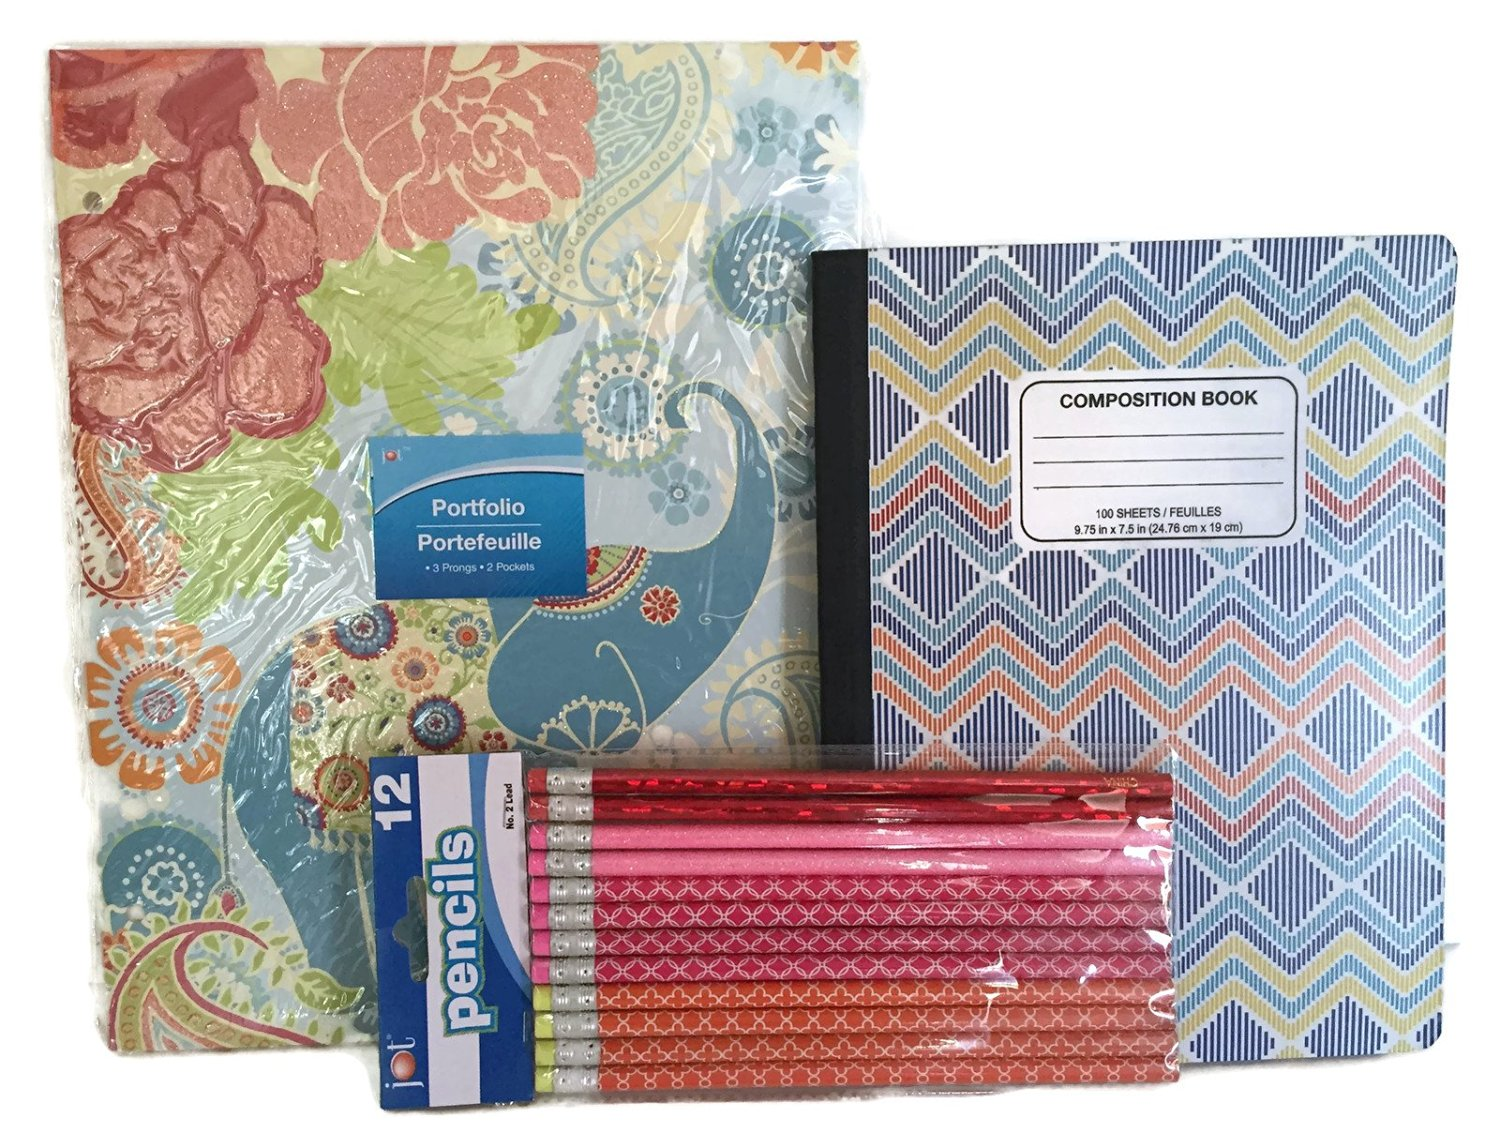 Glitter Elephant & Flower Folder Notebook Pencil School Bundle - 3 Items: One Glitter Elephant & Flower Folder, One Composition Notebook, Package of 12 Retro Pencils